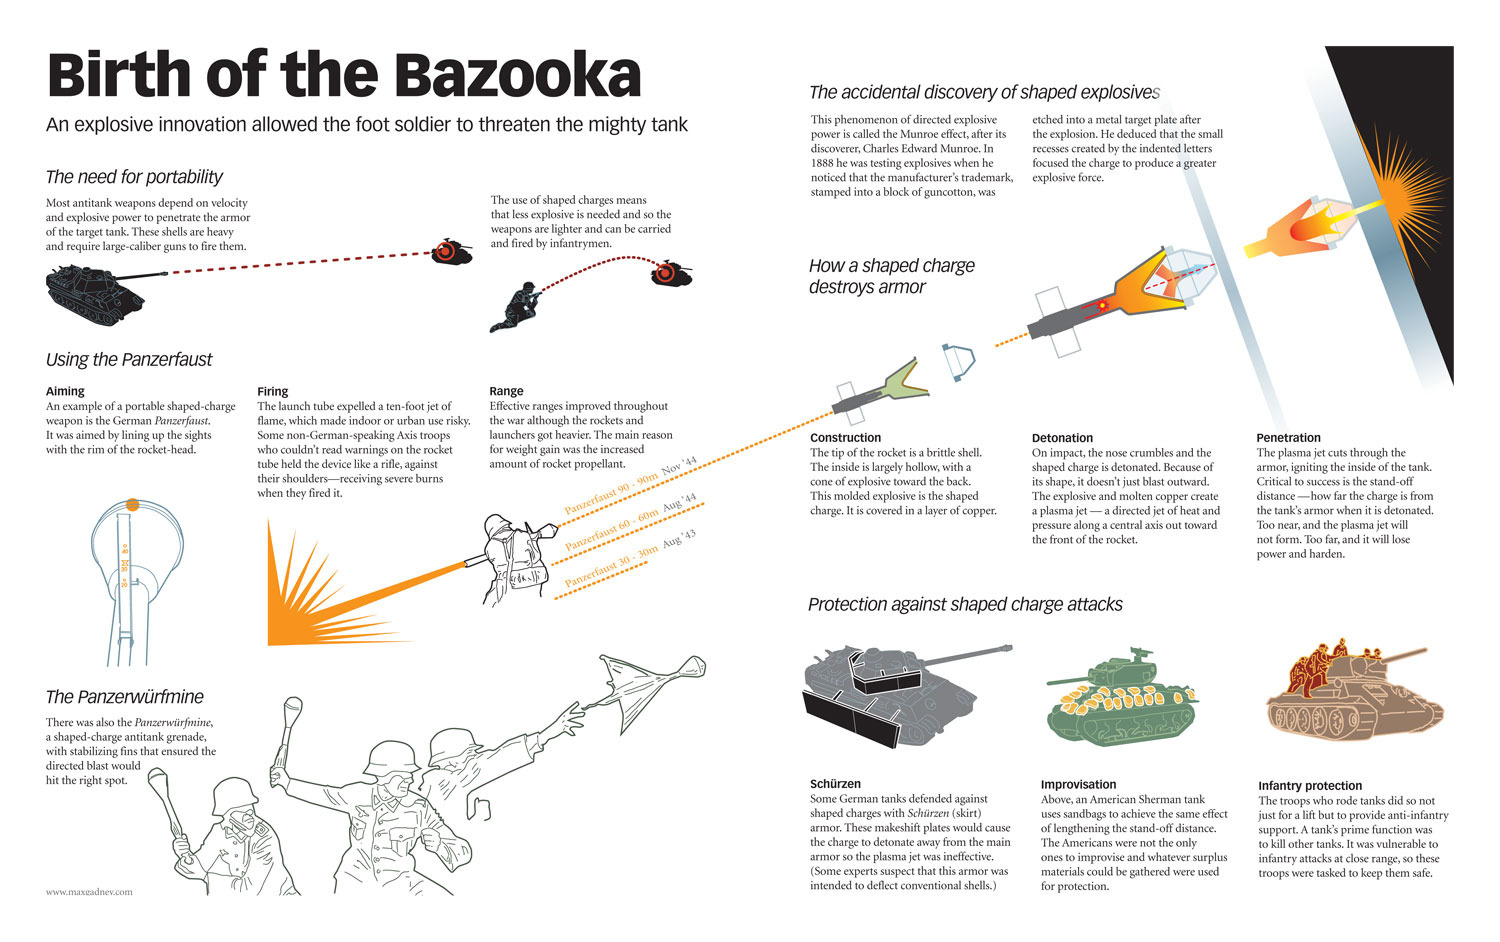 birth_of_bazooka